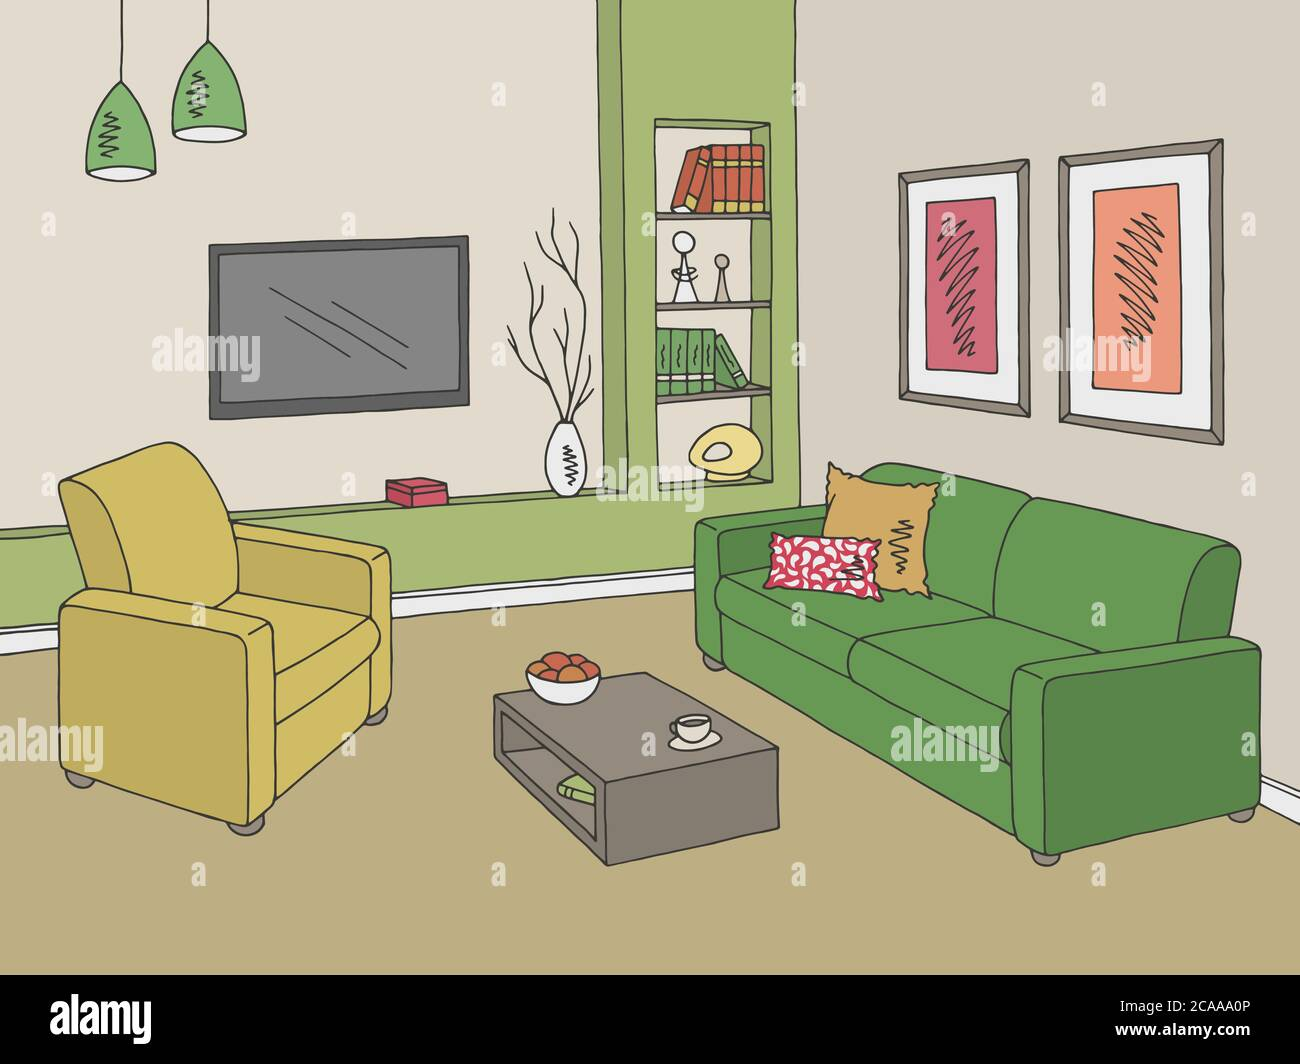 Living Room Graphic Color Home Interior Sketch Illustration Vector Stock Vector Image Art Alamy